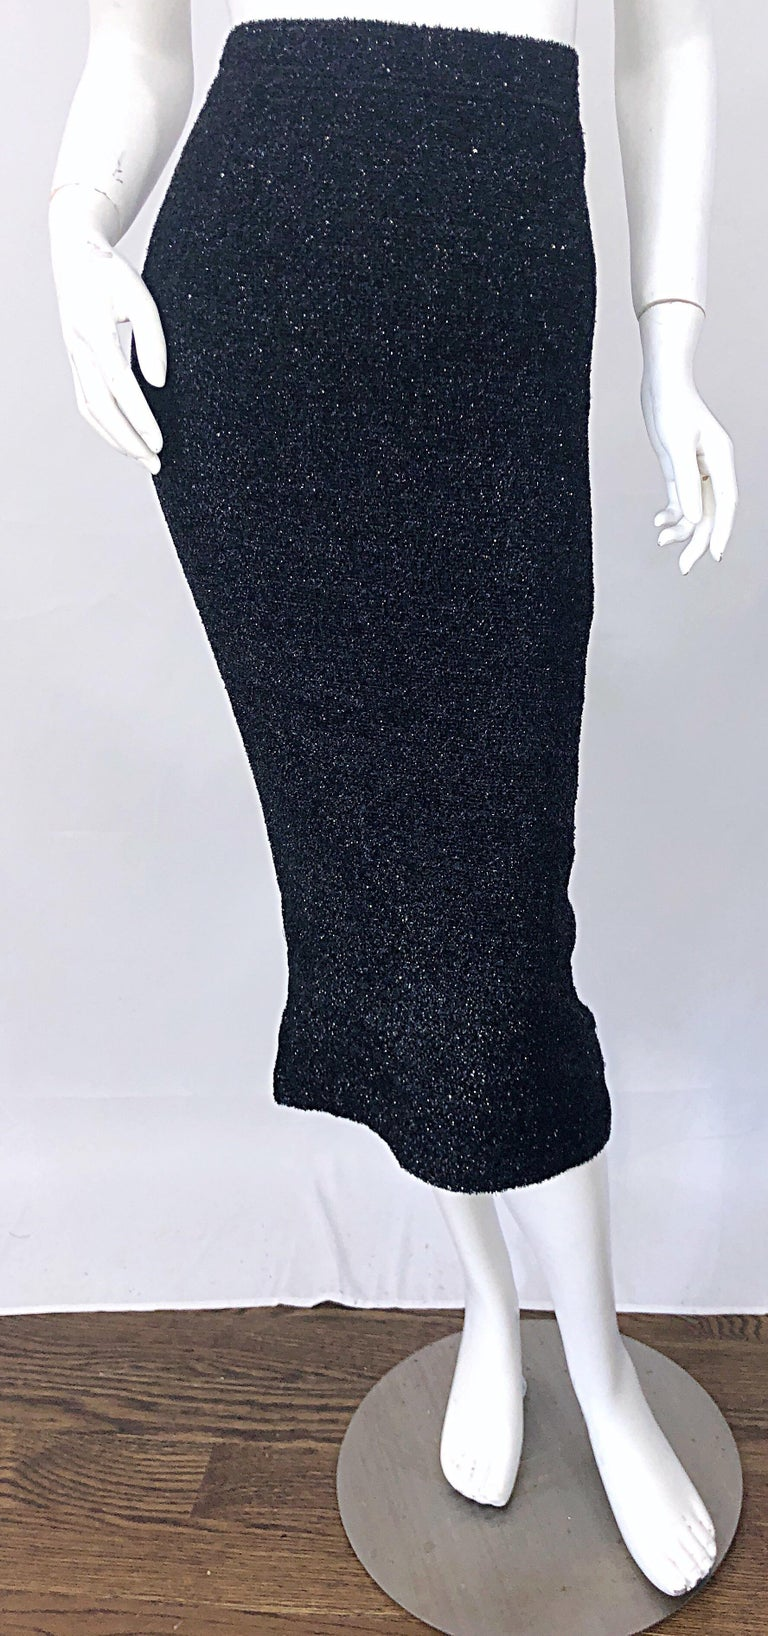 Sleek tailored vintage 1990s CHRISTIAN LACROIX black silk metallic eyelash lurex high waisted midi pencil skirt! The perfect black skirt that really adds that little extra to any outfit. High waist fit with a for fitting body. Hidden zipper up the